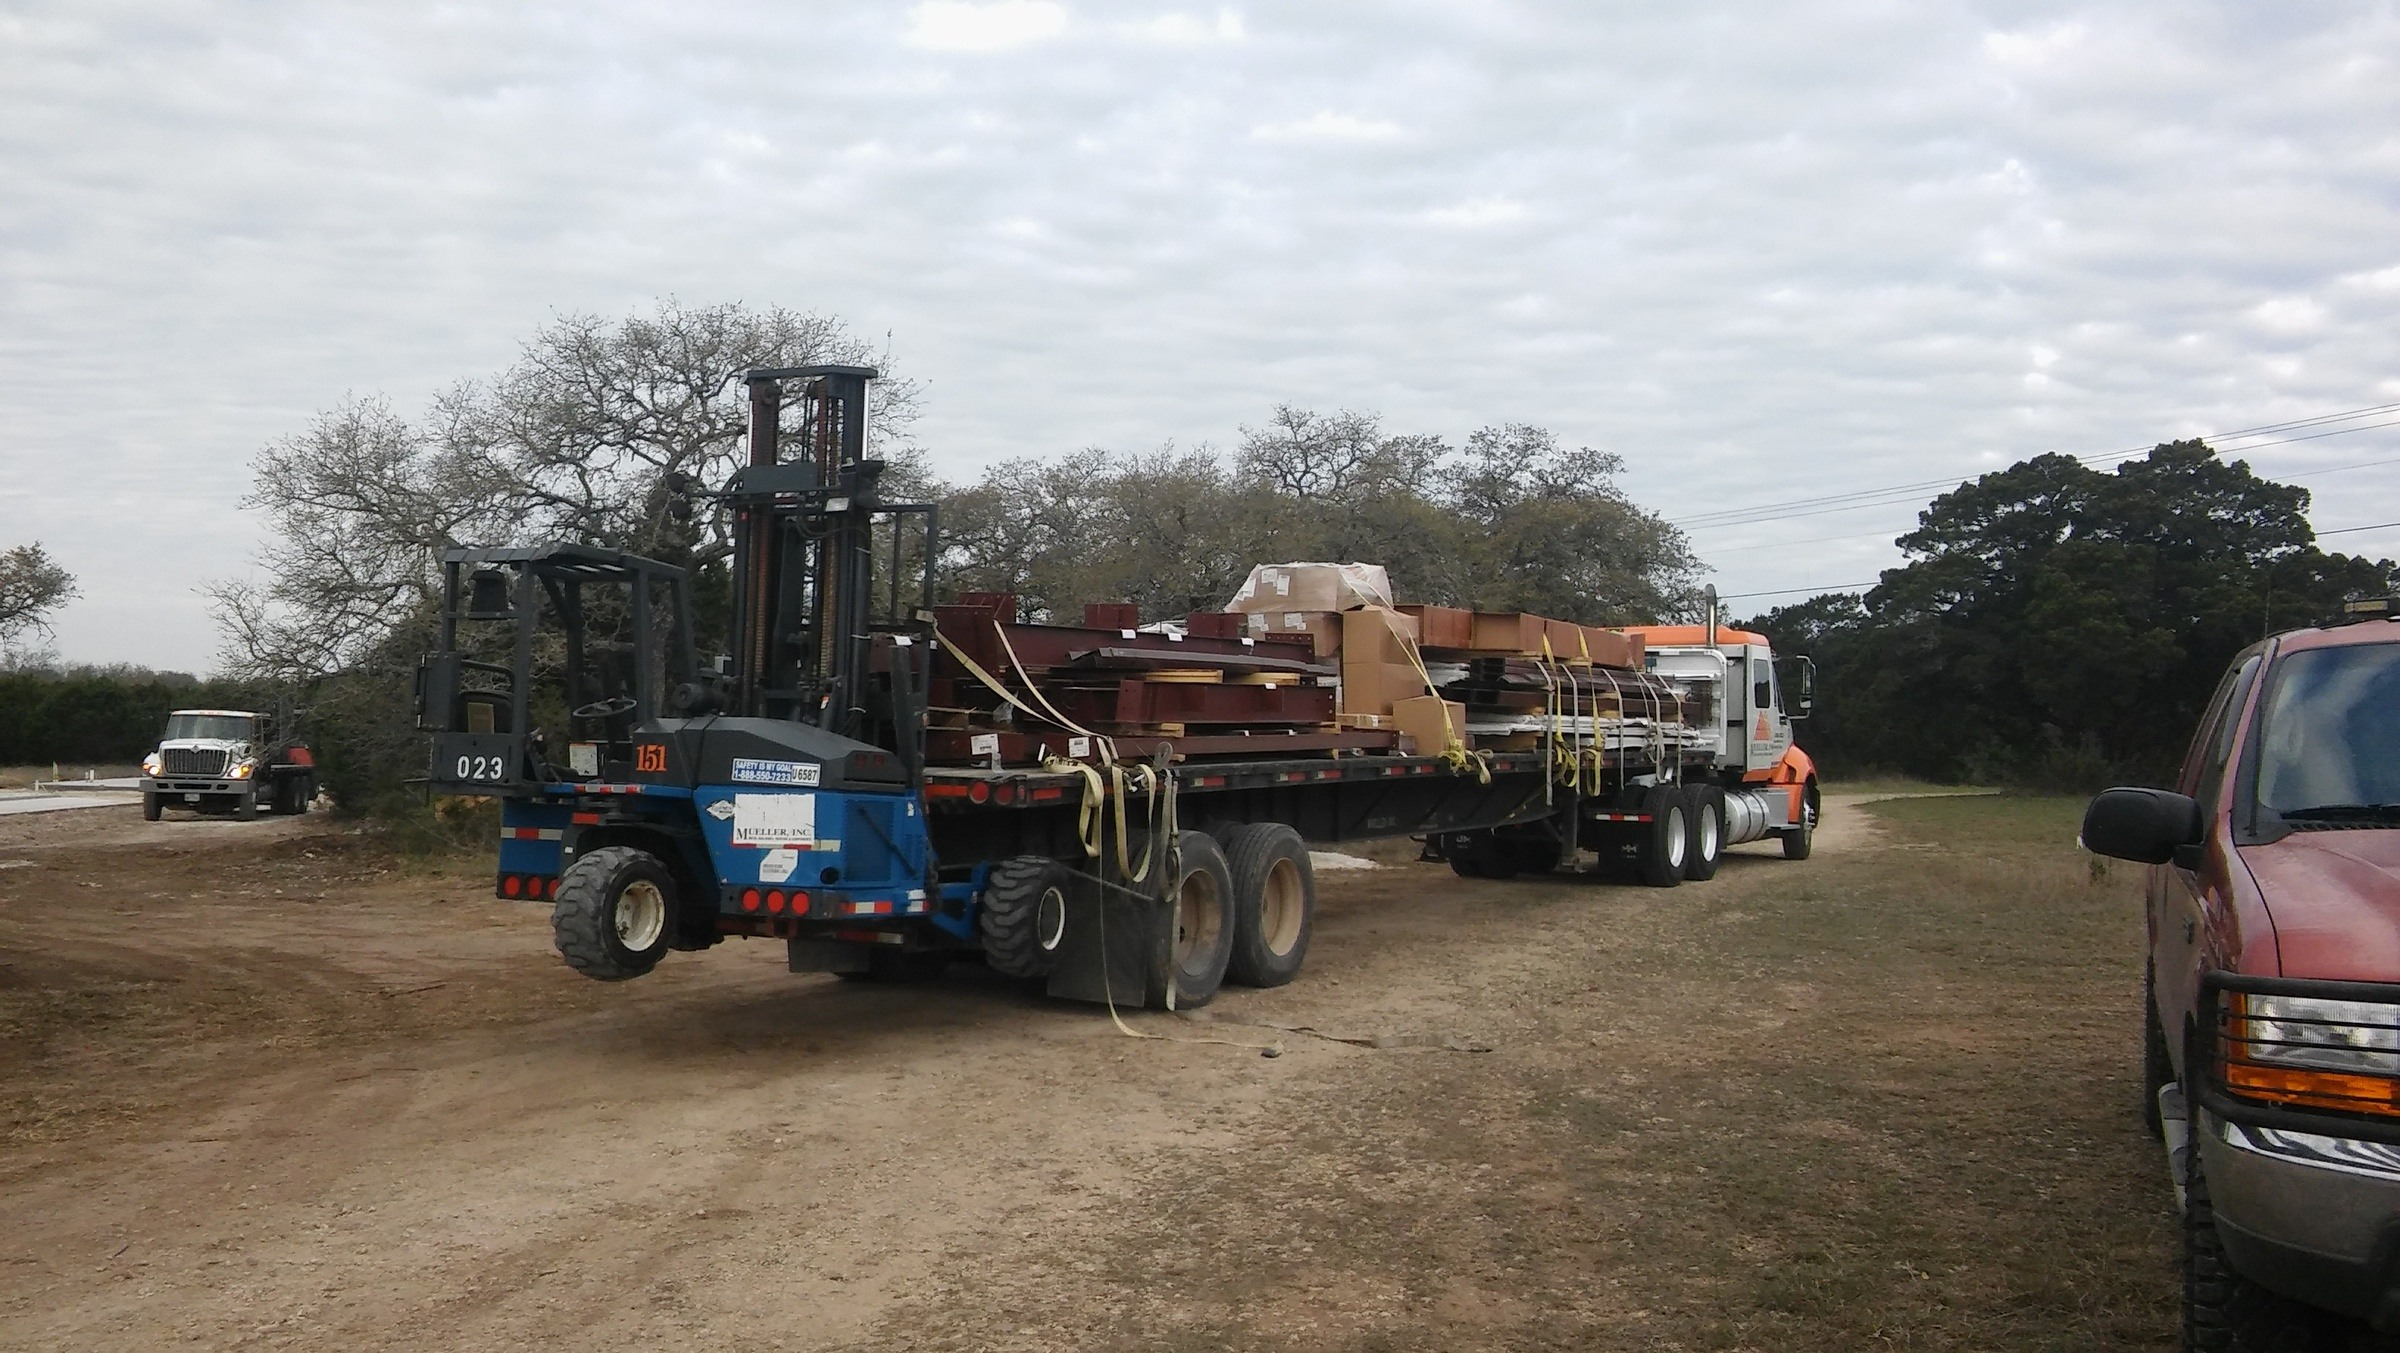 Delivery of the steel building materials.